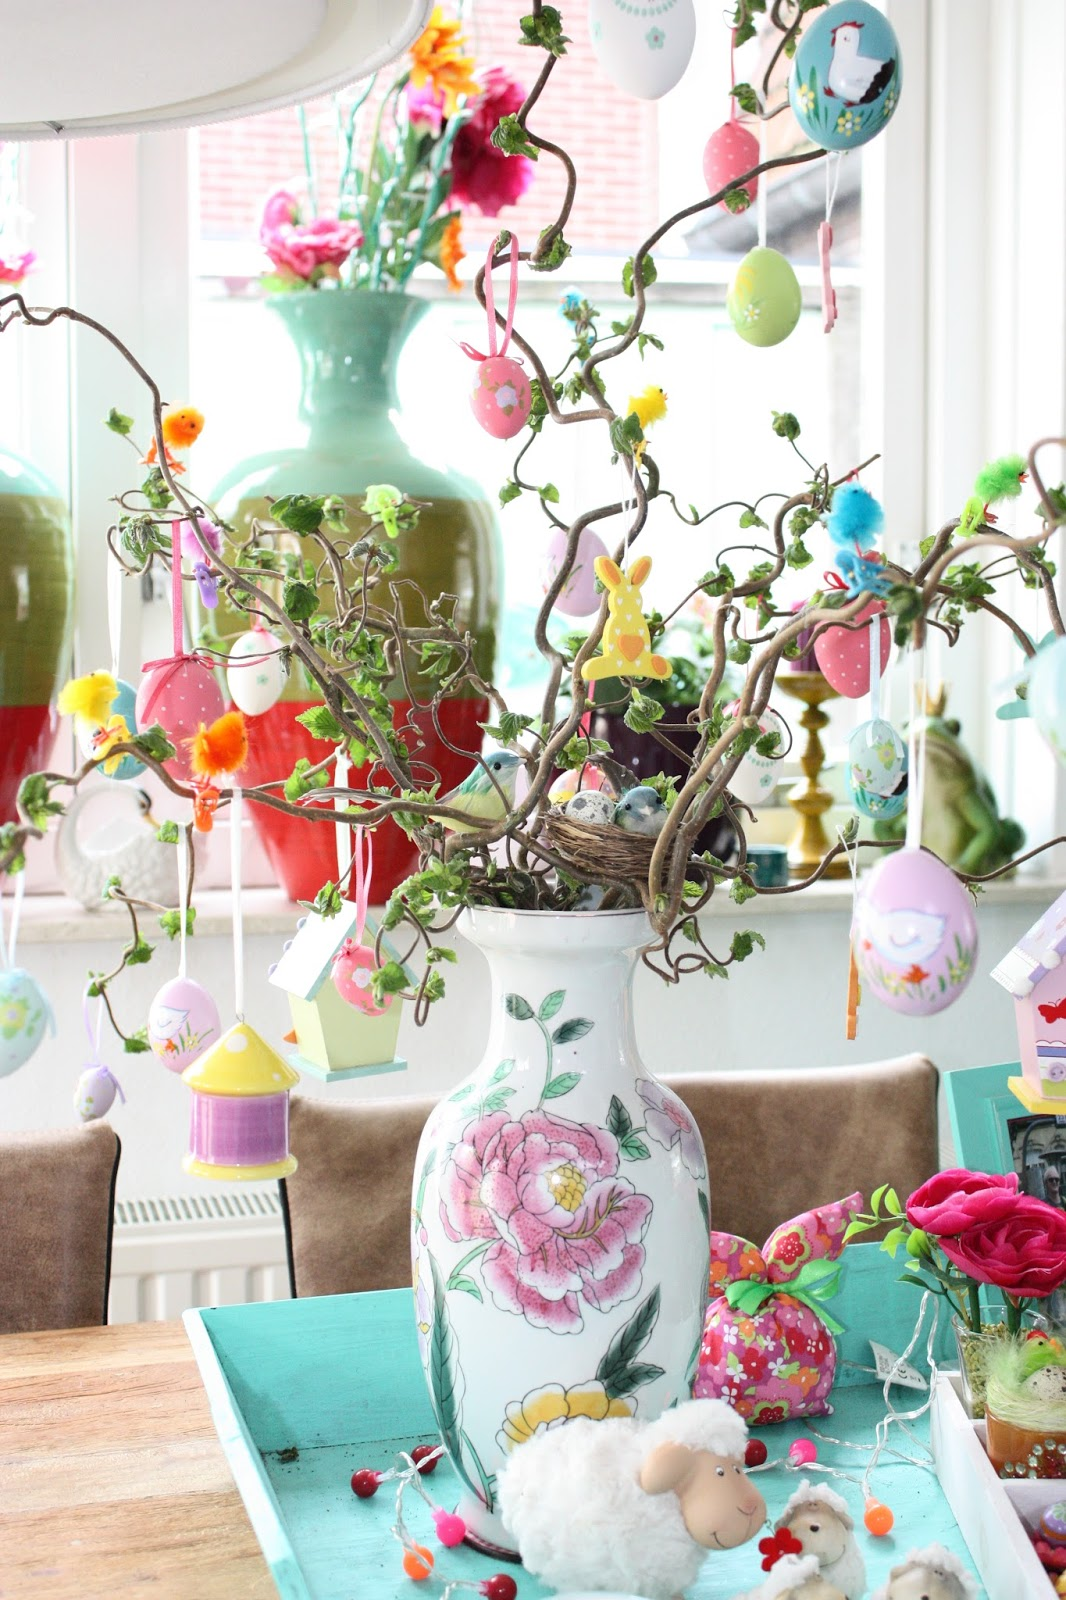 Happymess happy easter in my home - Huis om te versieren ...